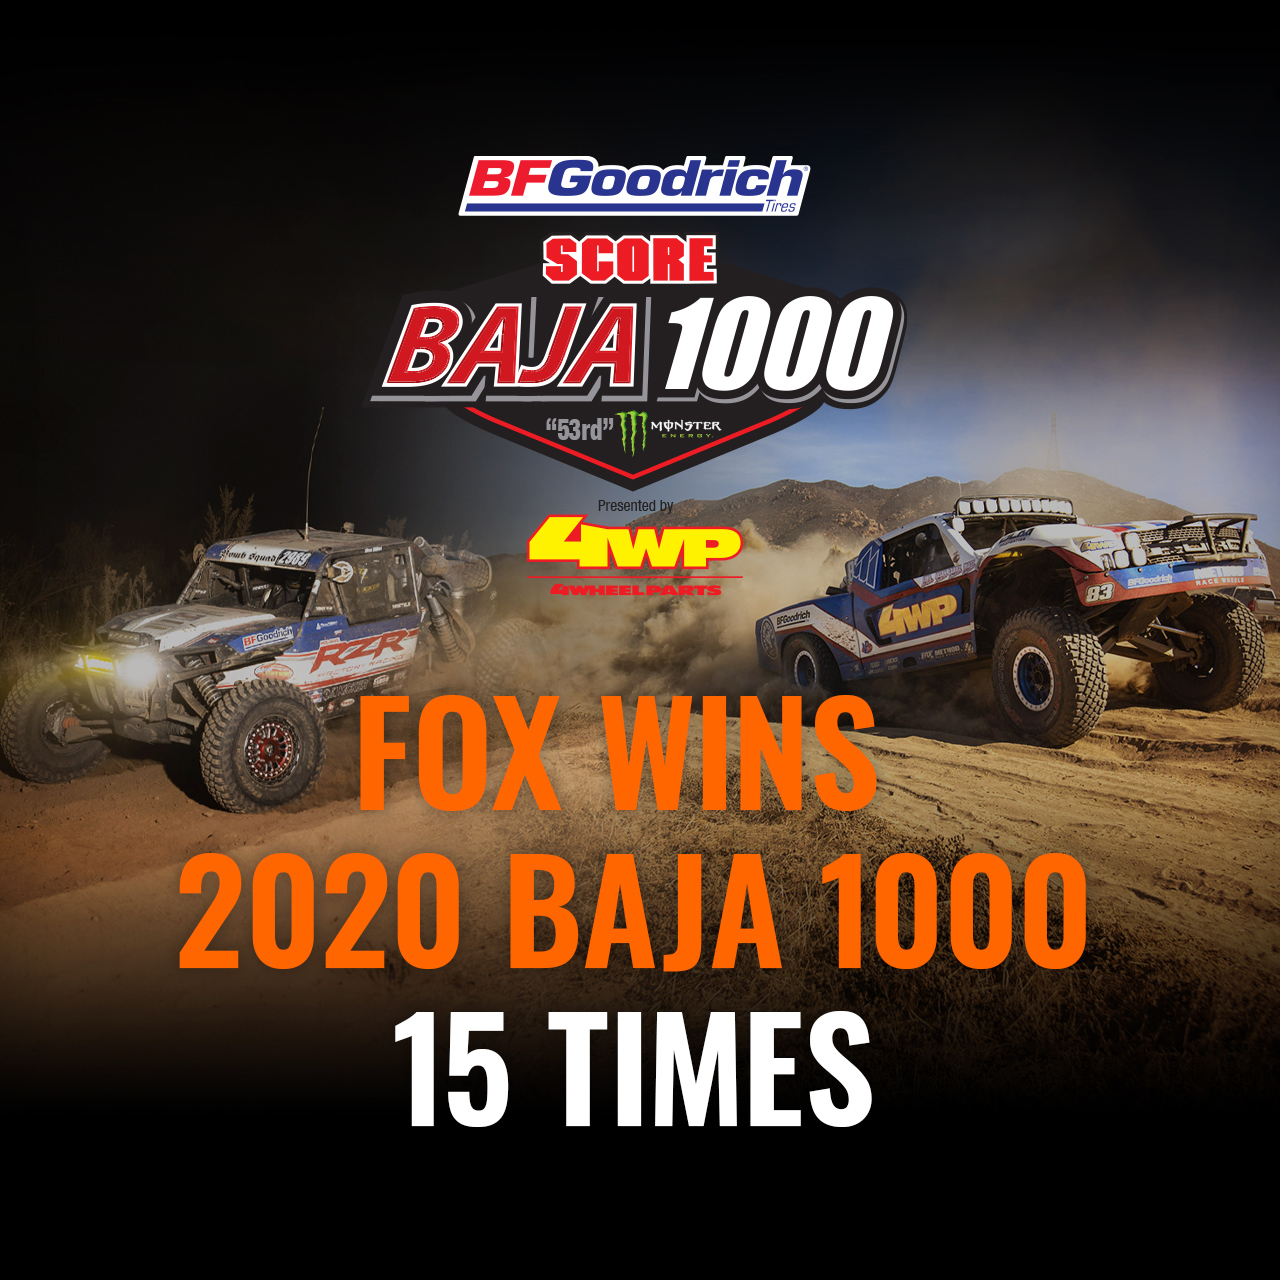 FOX Wins 2020 Baja 1000 15 times